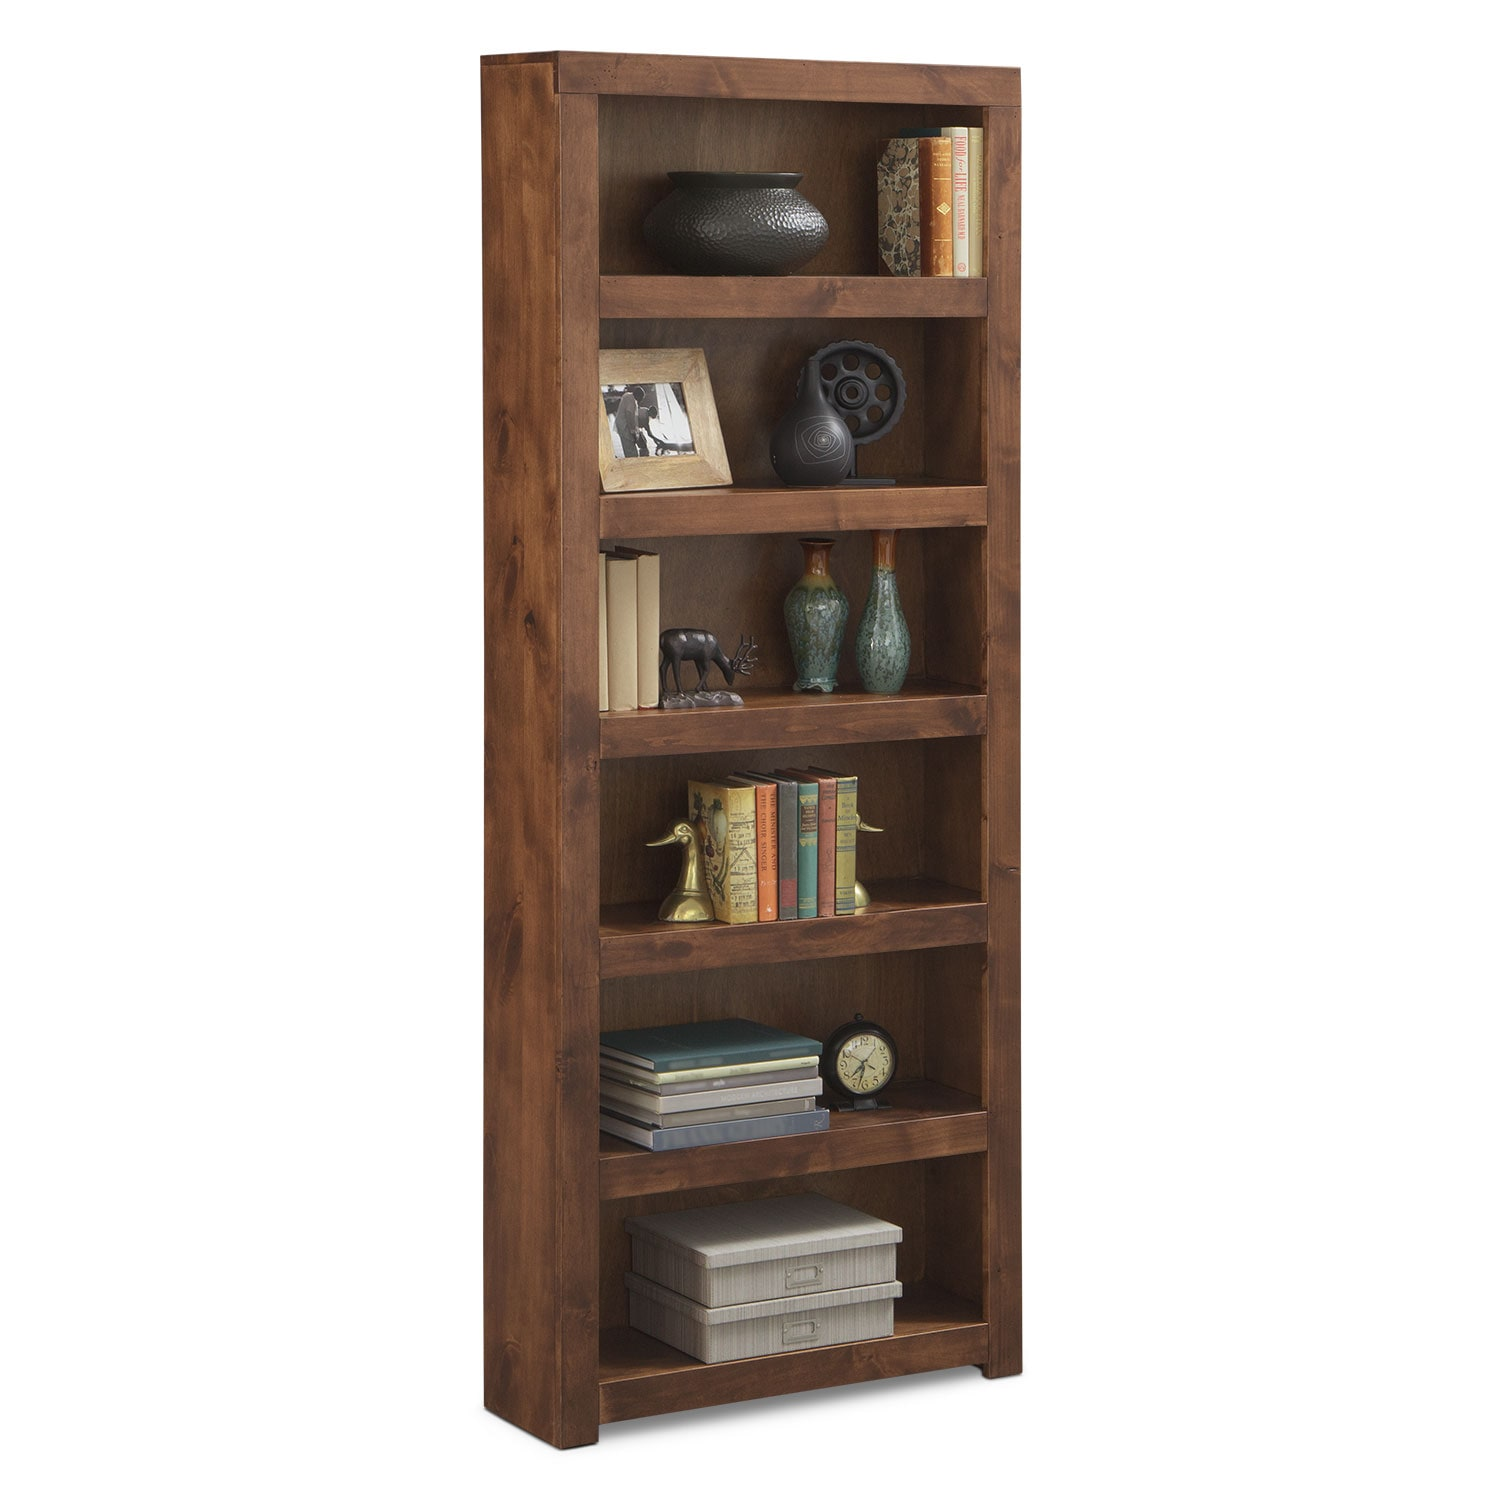 xxx market shelf world bookcase office two furniture bookshelves home farmhouse do bookcases category wood wide ladder